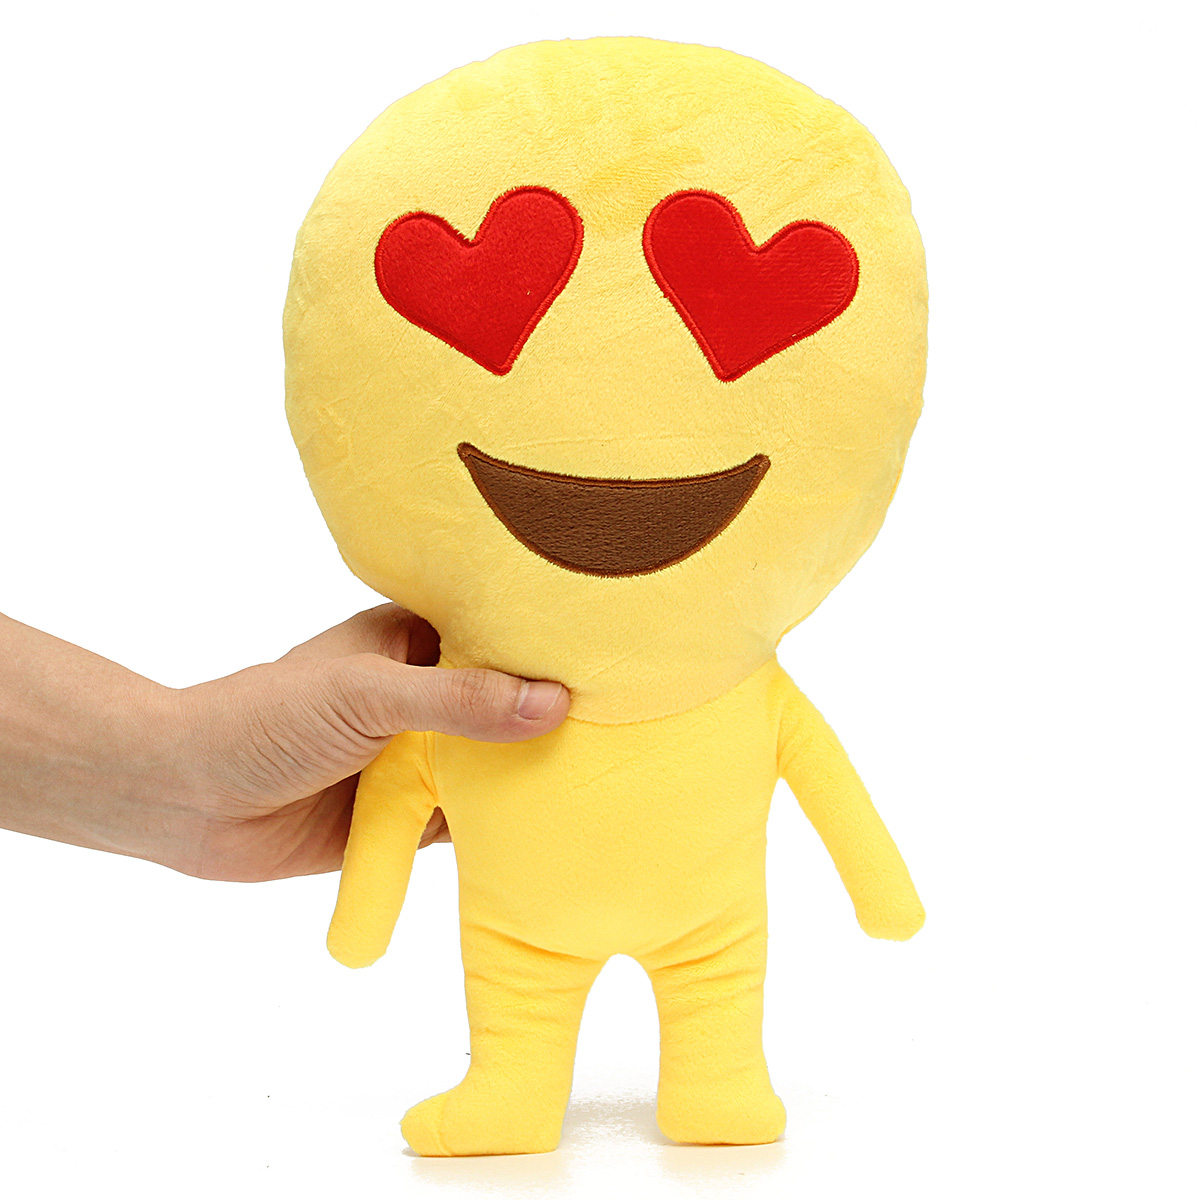 Cute Emoji Poo Throw Pillows Cushion Stuffed Plush Doll Toys Home Sofa Decor